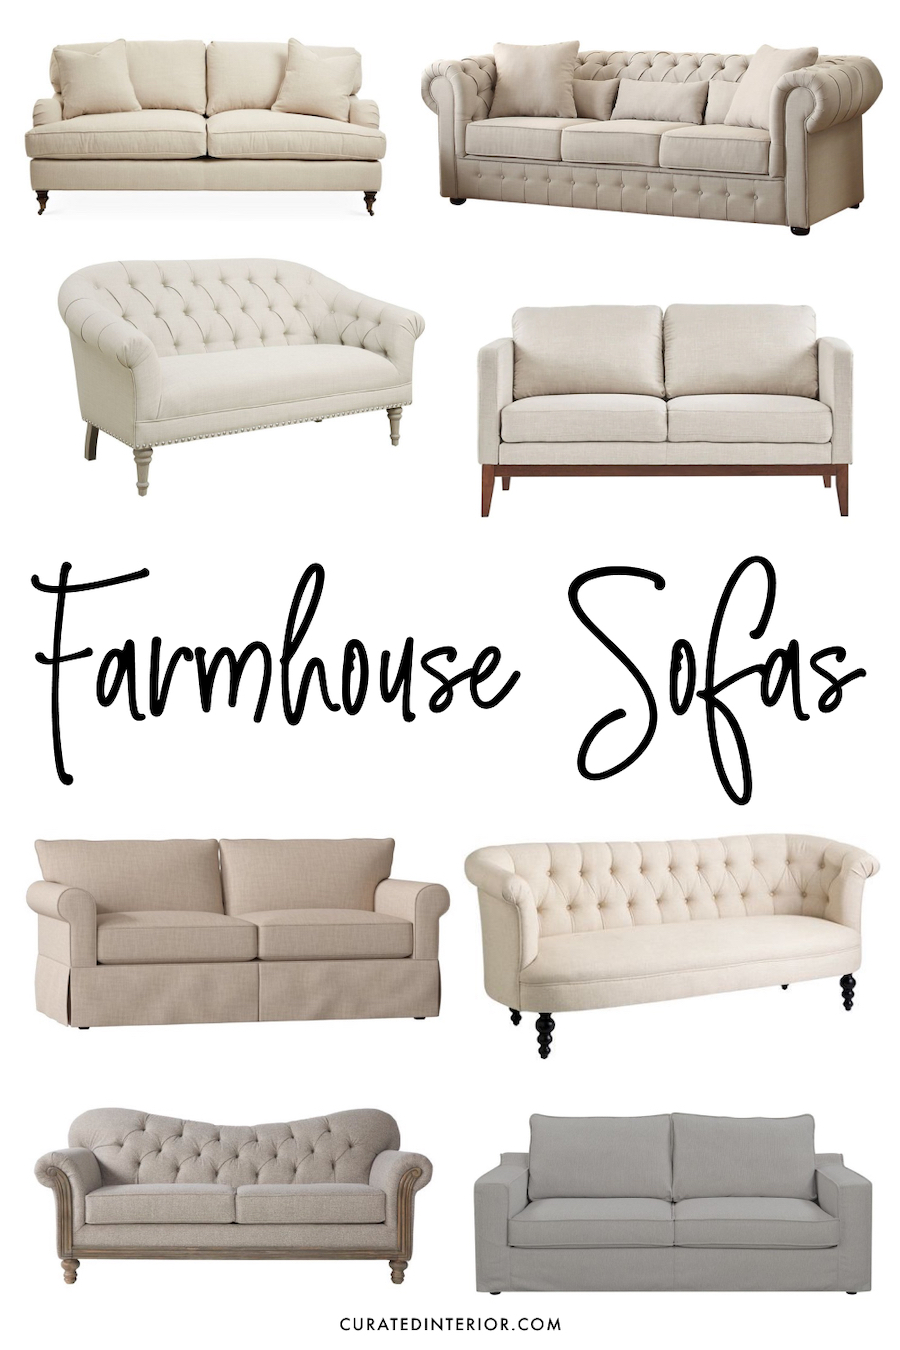 Farmhouse Sofas for ALL Budgets